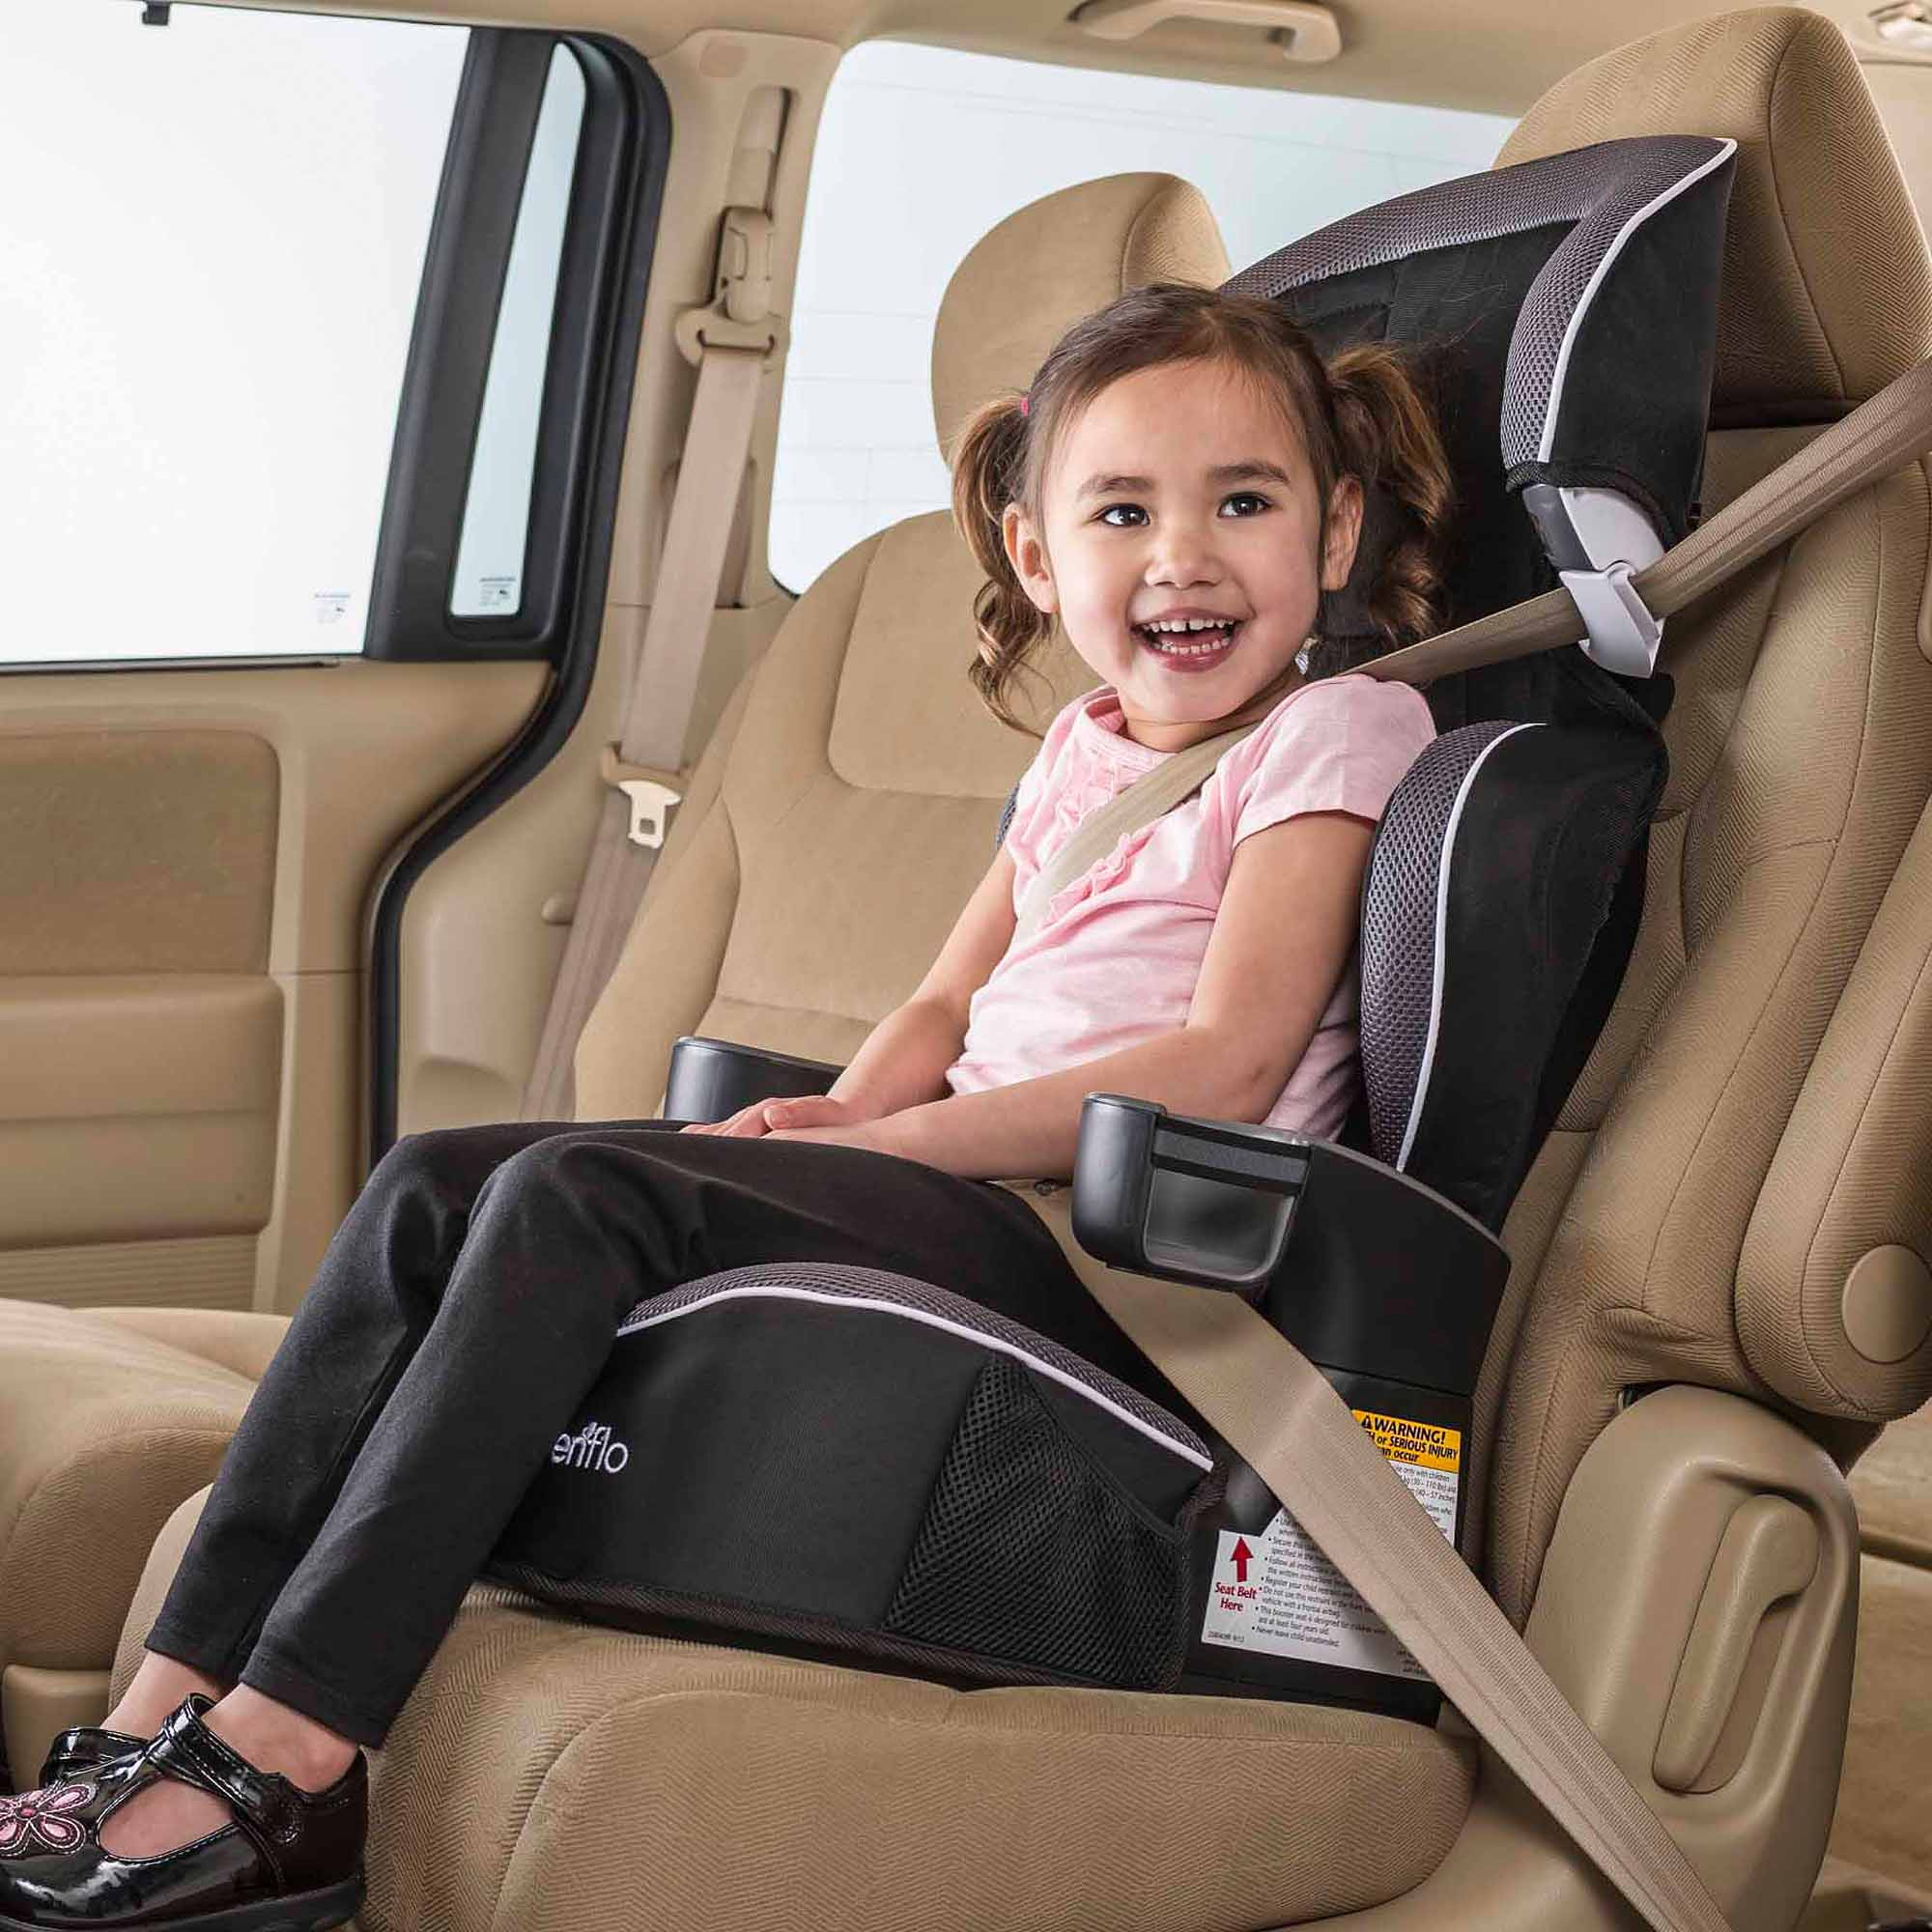 Evenflo Big Kid Advanced High Back Booster Car Seat, Aelle